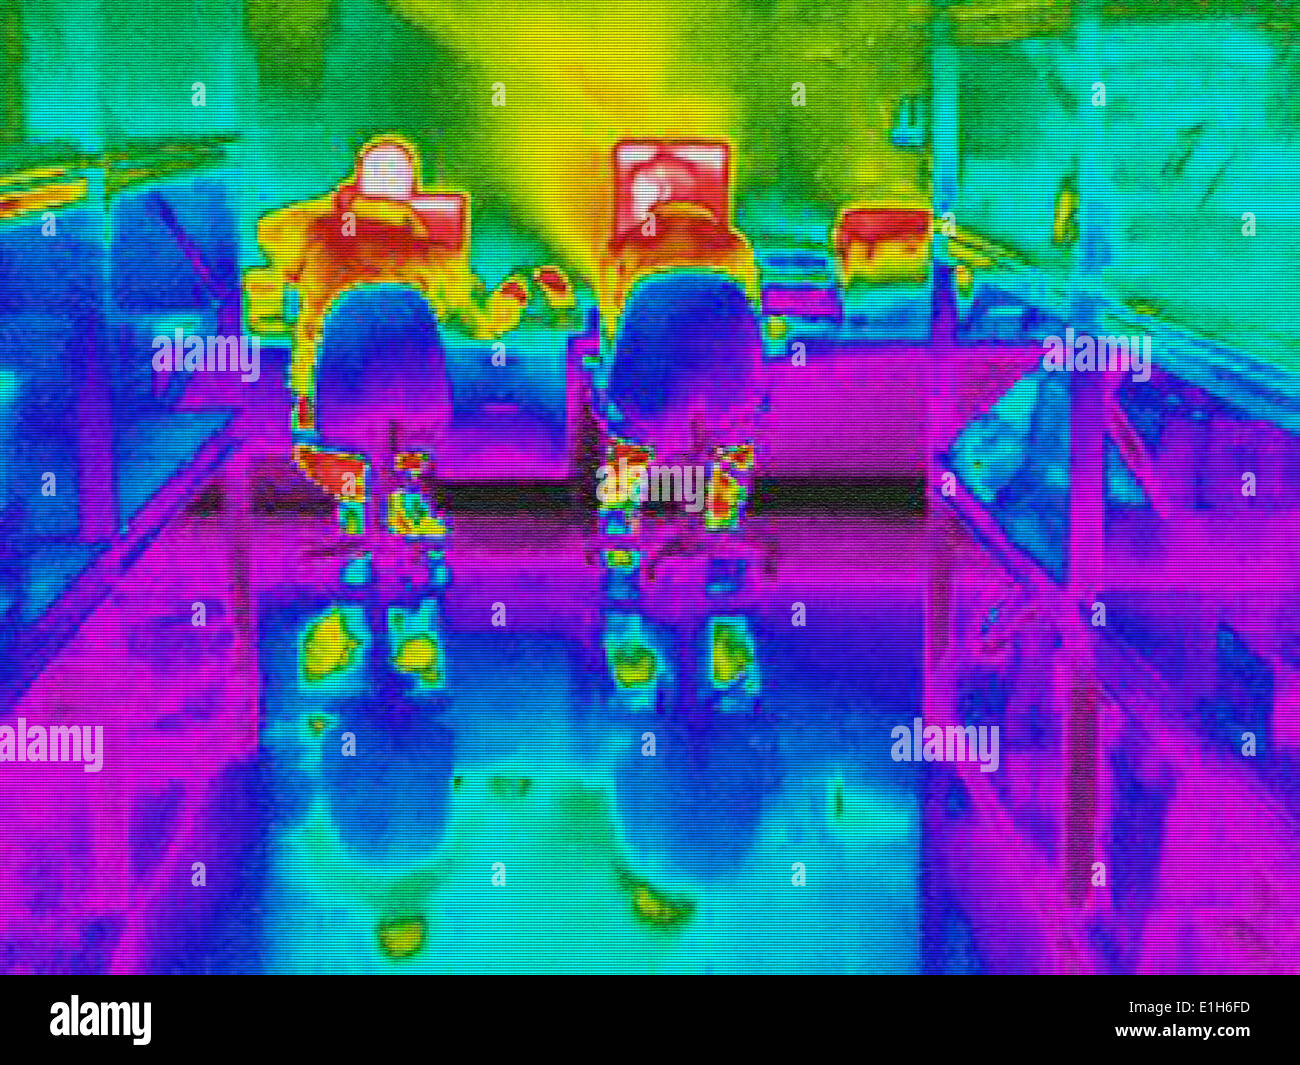 Infra red heat image of workers and heat loss at computer work station - Stock Image